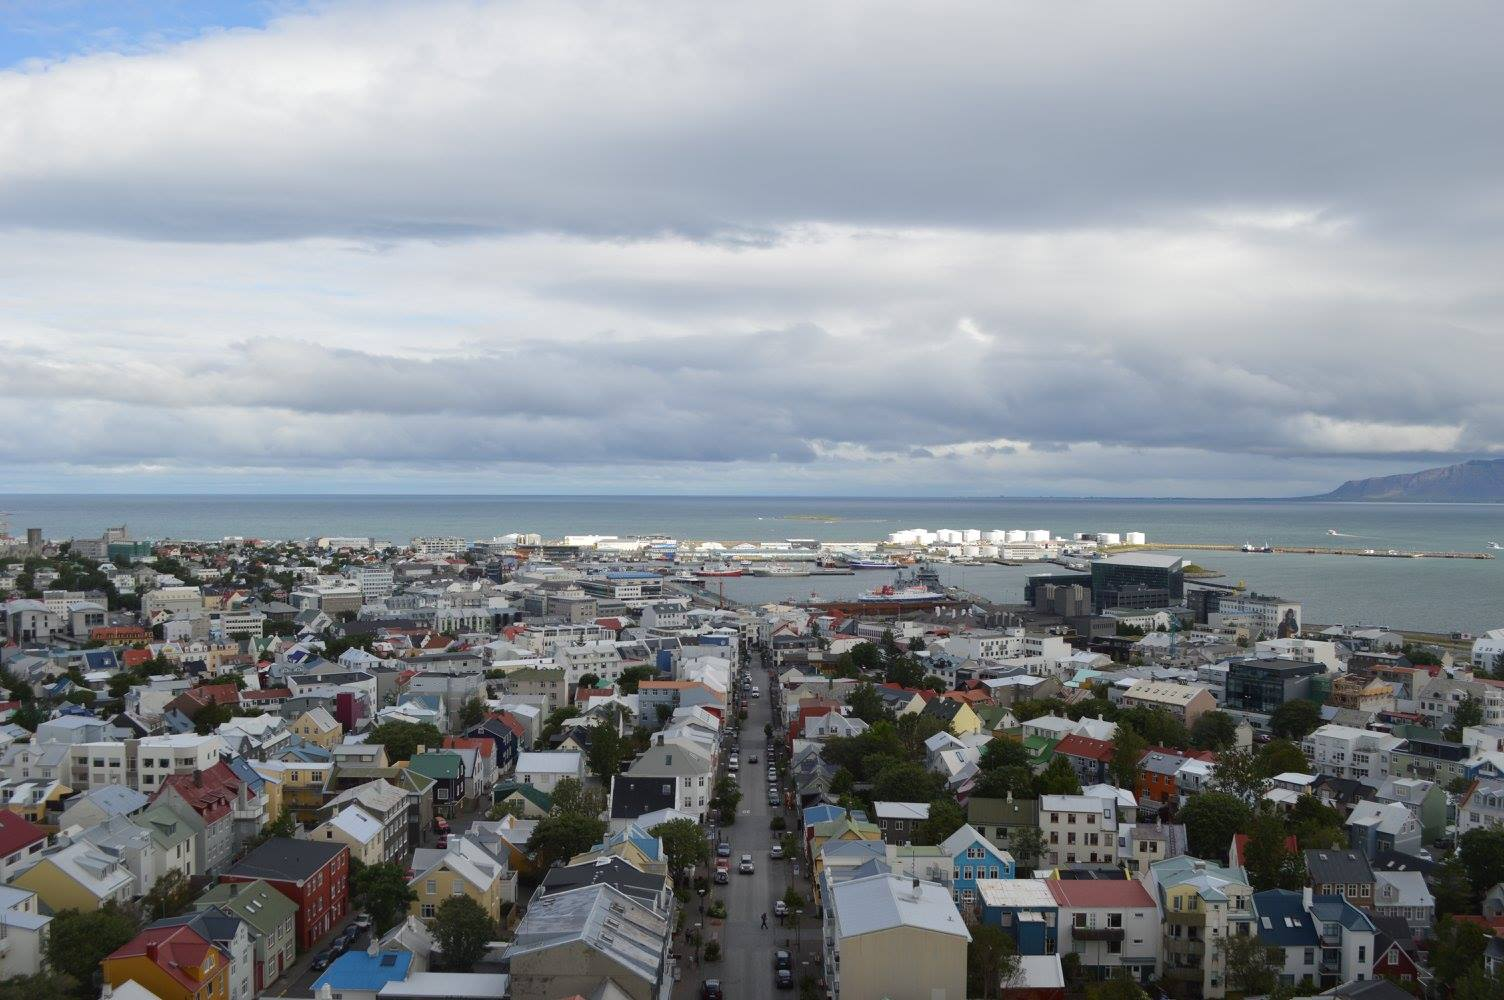 I finally made it to Iceland (one of my top bucket list destinations) in July!